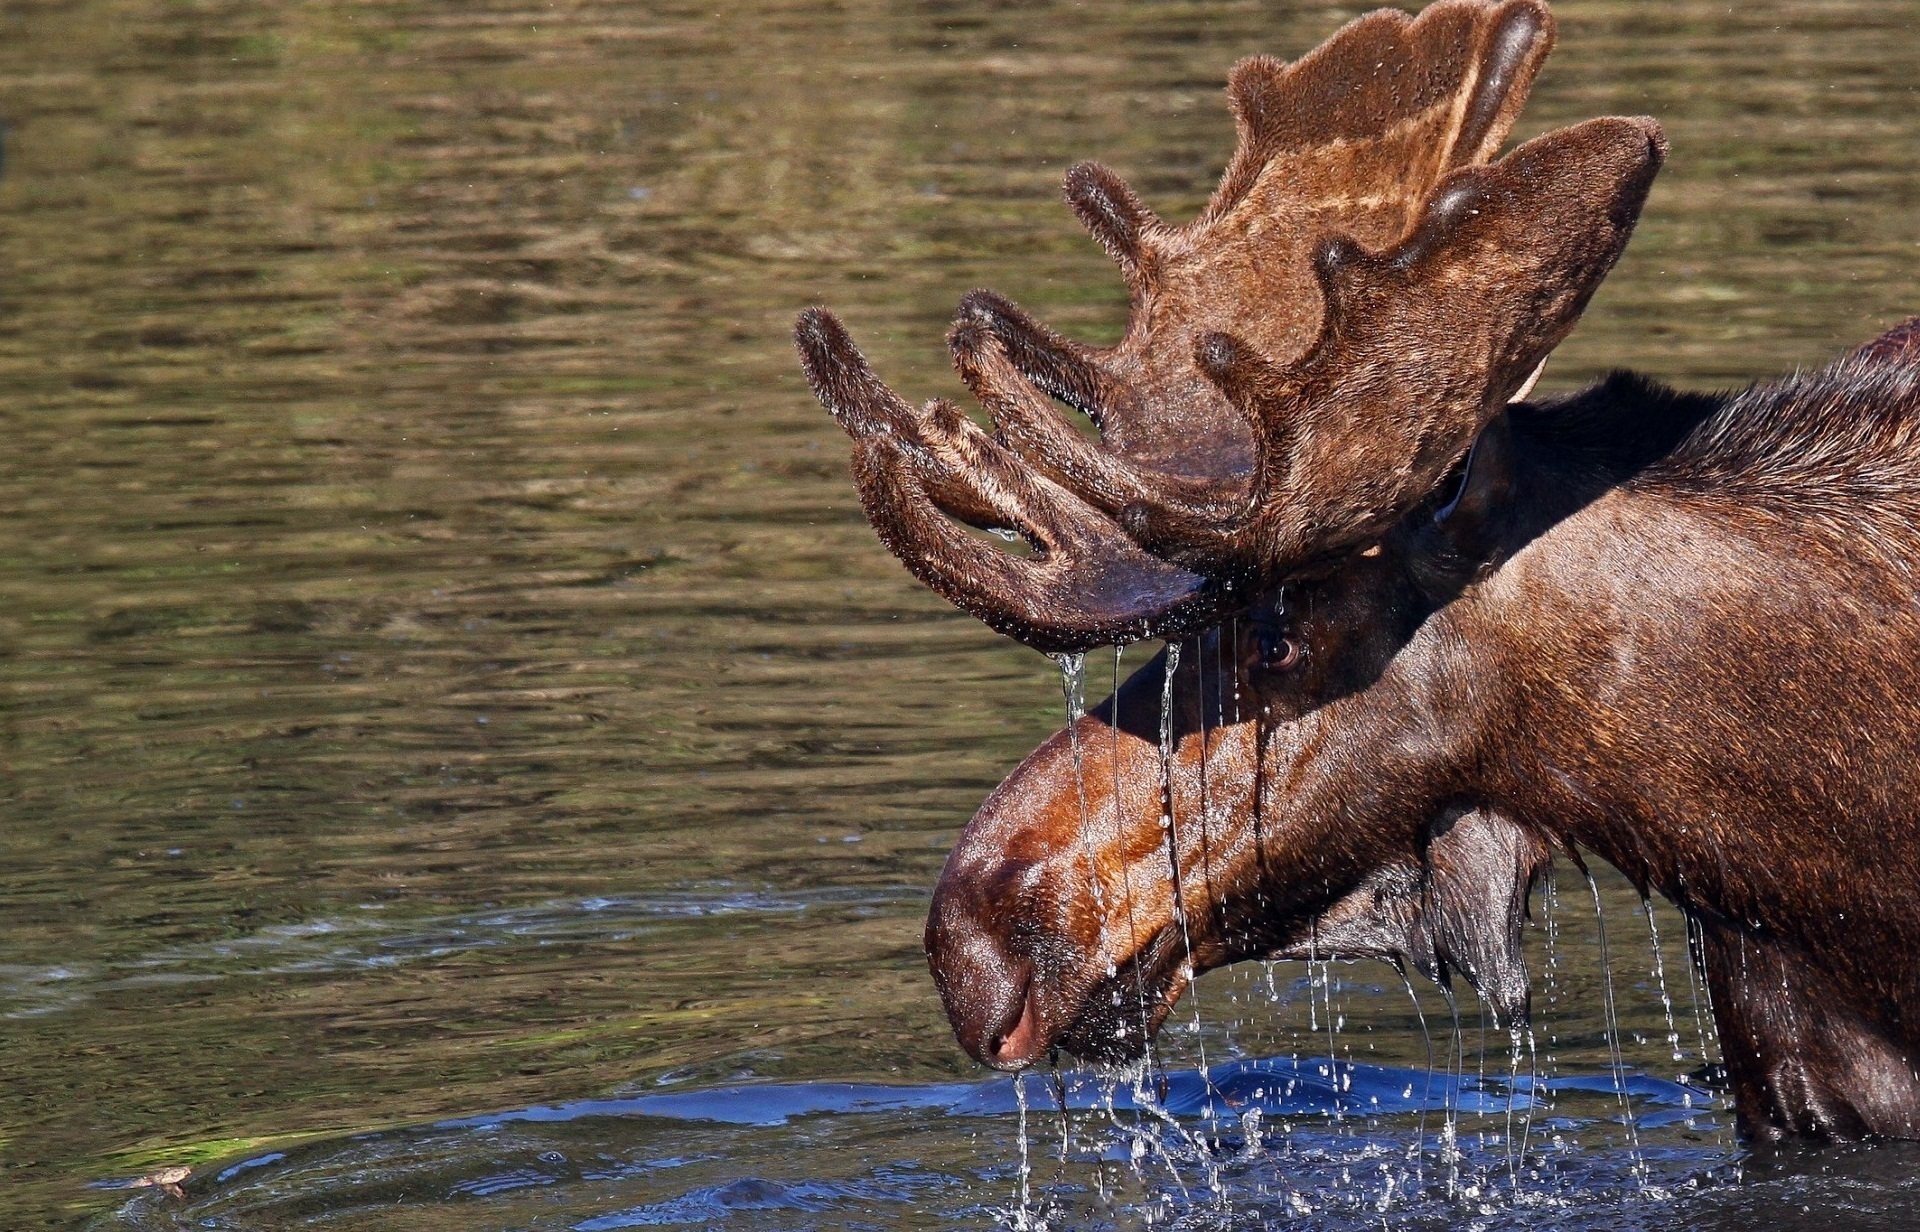 154408 download wallpaper Animals, Water, Elk, Horns, Head, Drops screensavers and pictures for free